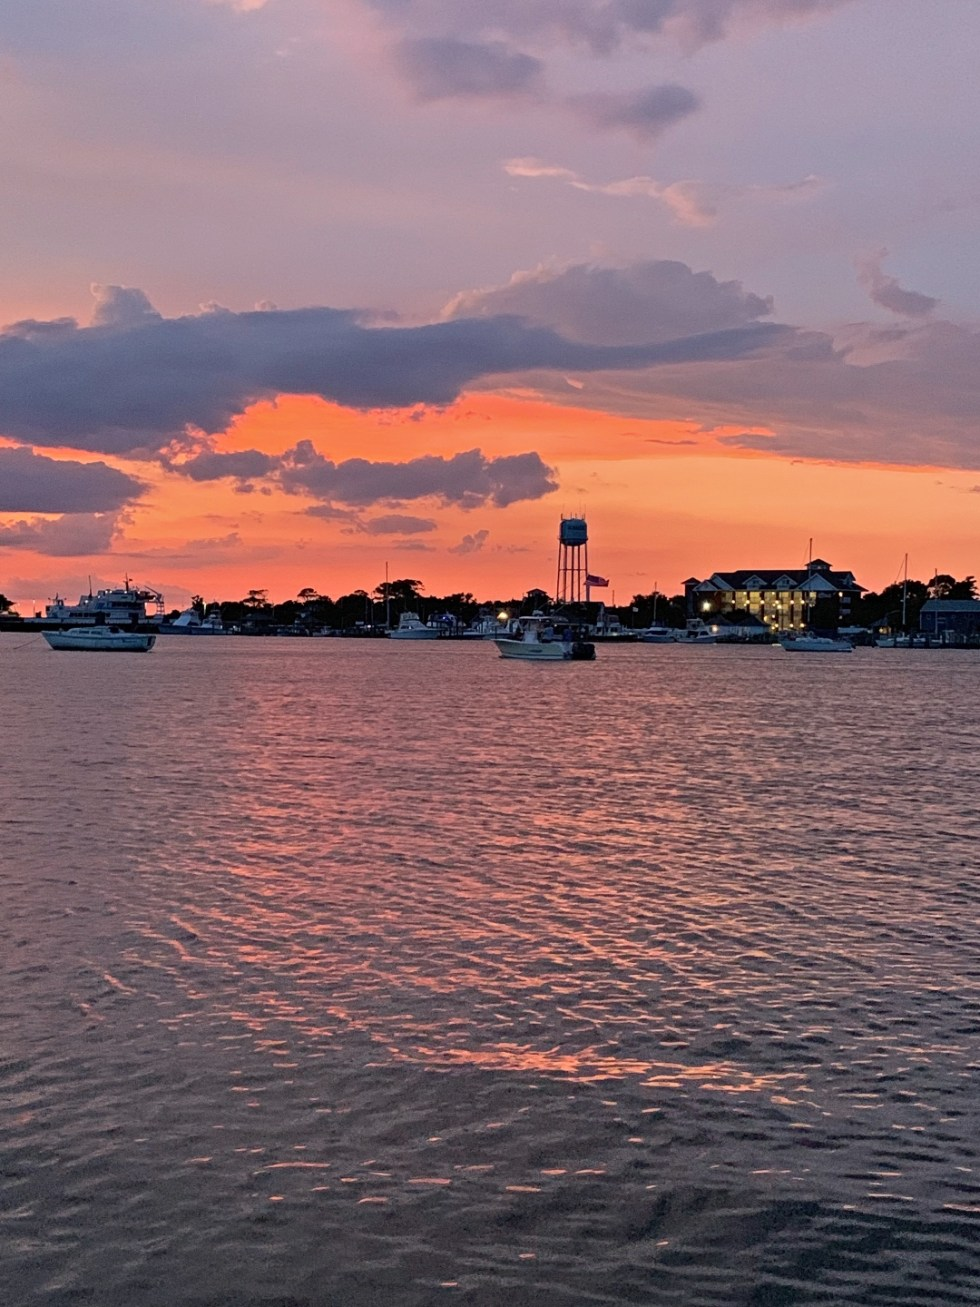 Local Love: 10 Best Places to Photograph in North Carolina - I'm Fixin' To - @mbg0112 | Best Places to Photography in North Carolina by popular N.C. lifestyle blog, I'm Fixin' To: image of a orange sunset at Silver Lake on Ocracoke Island.